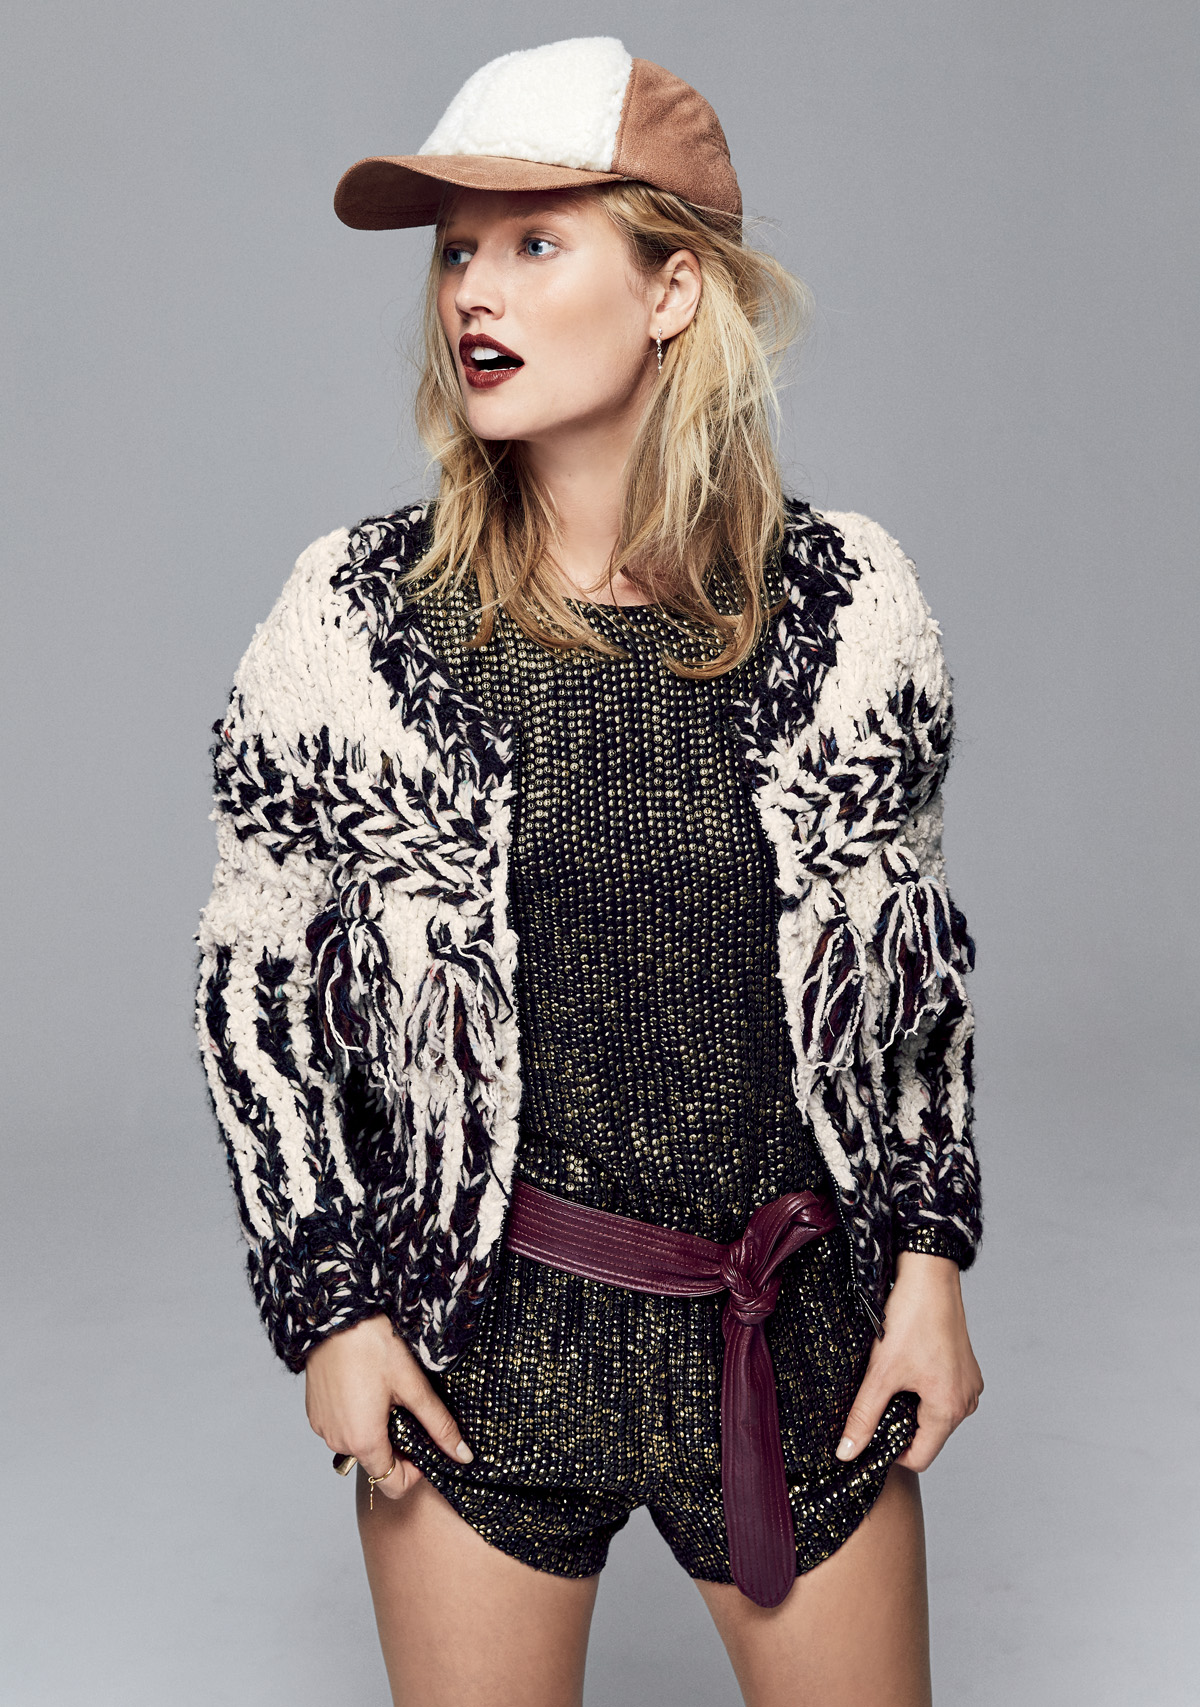 Free People October Catalog Toni Garrn 4